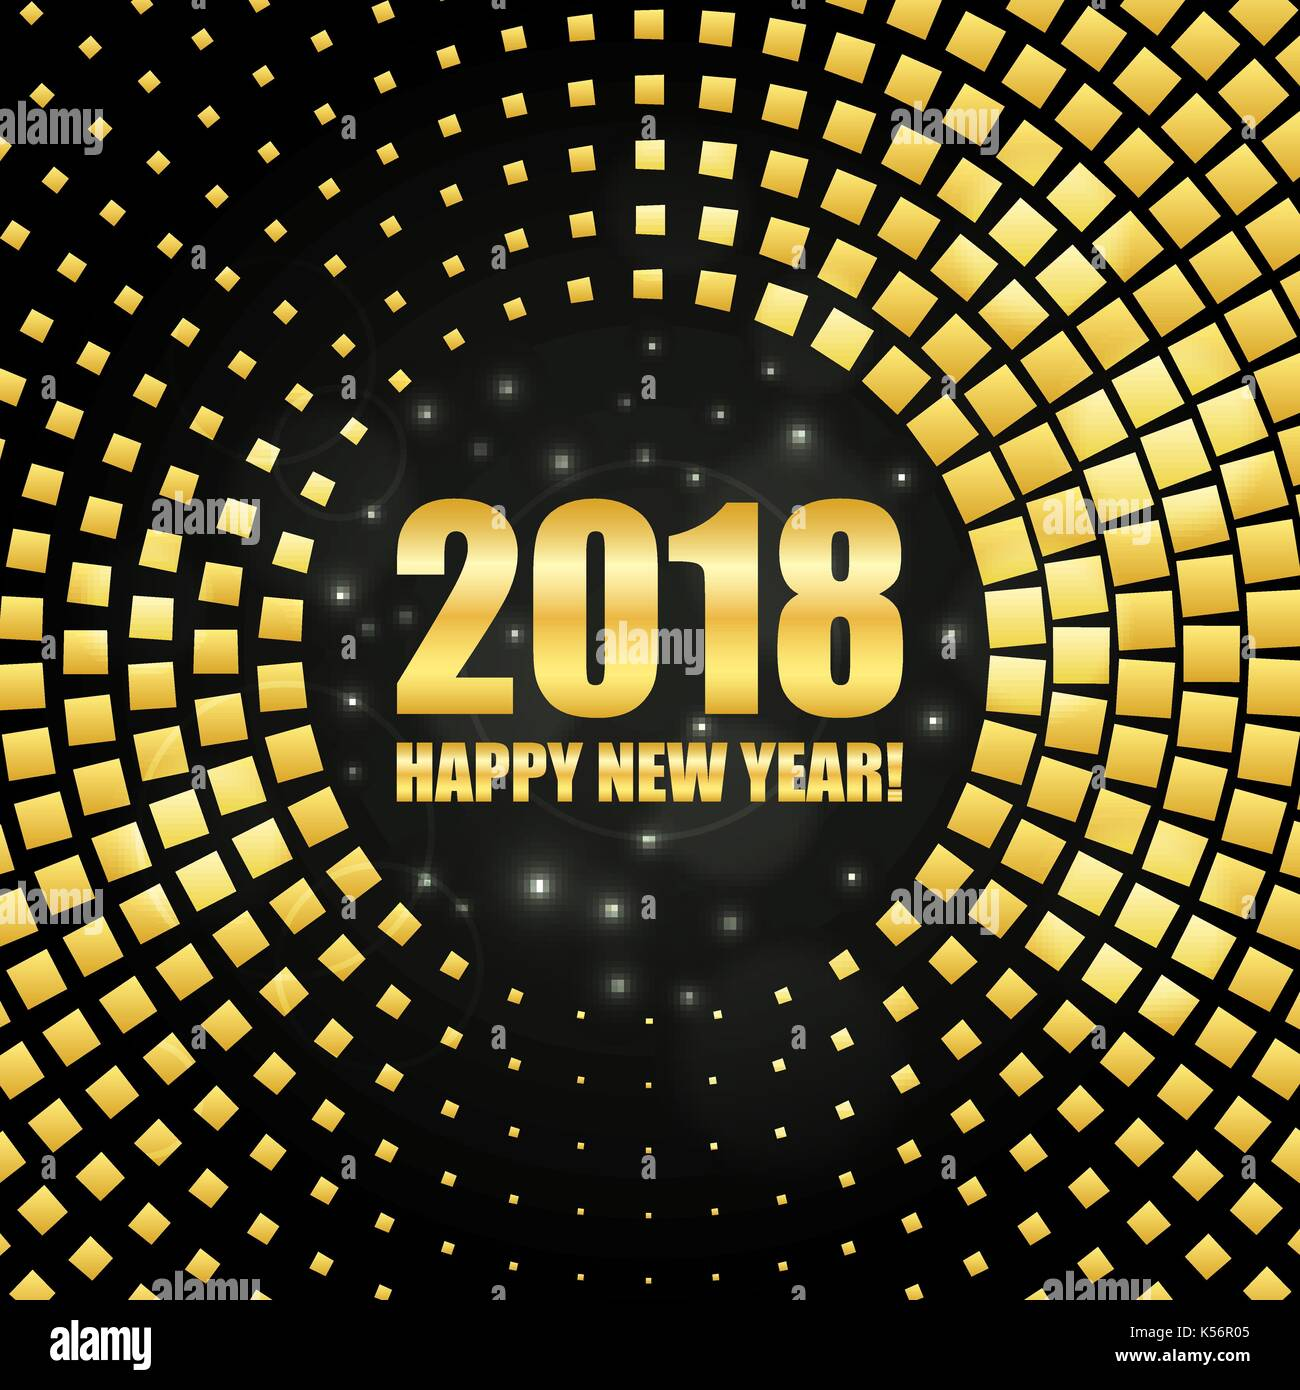 happy new year 2018 golden shimmer background made of abstract spangles for your greeting card design